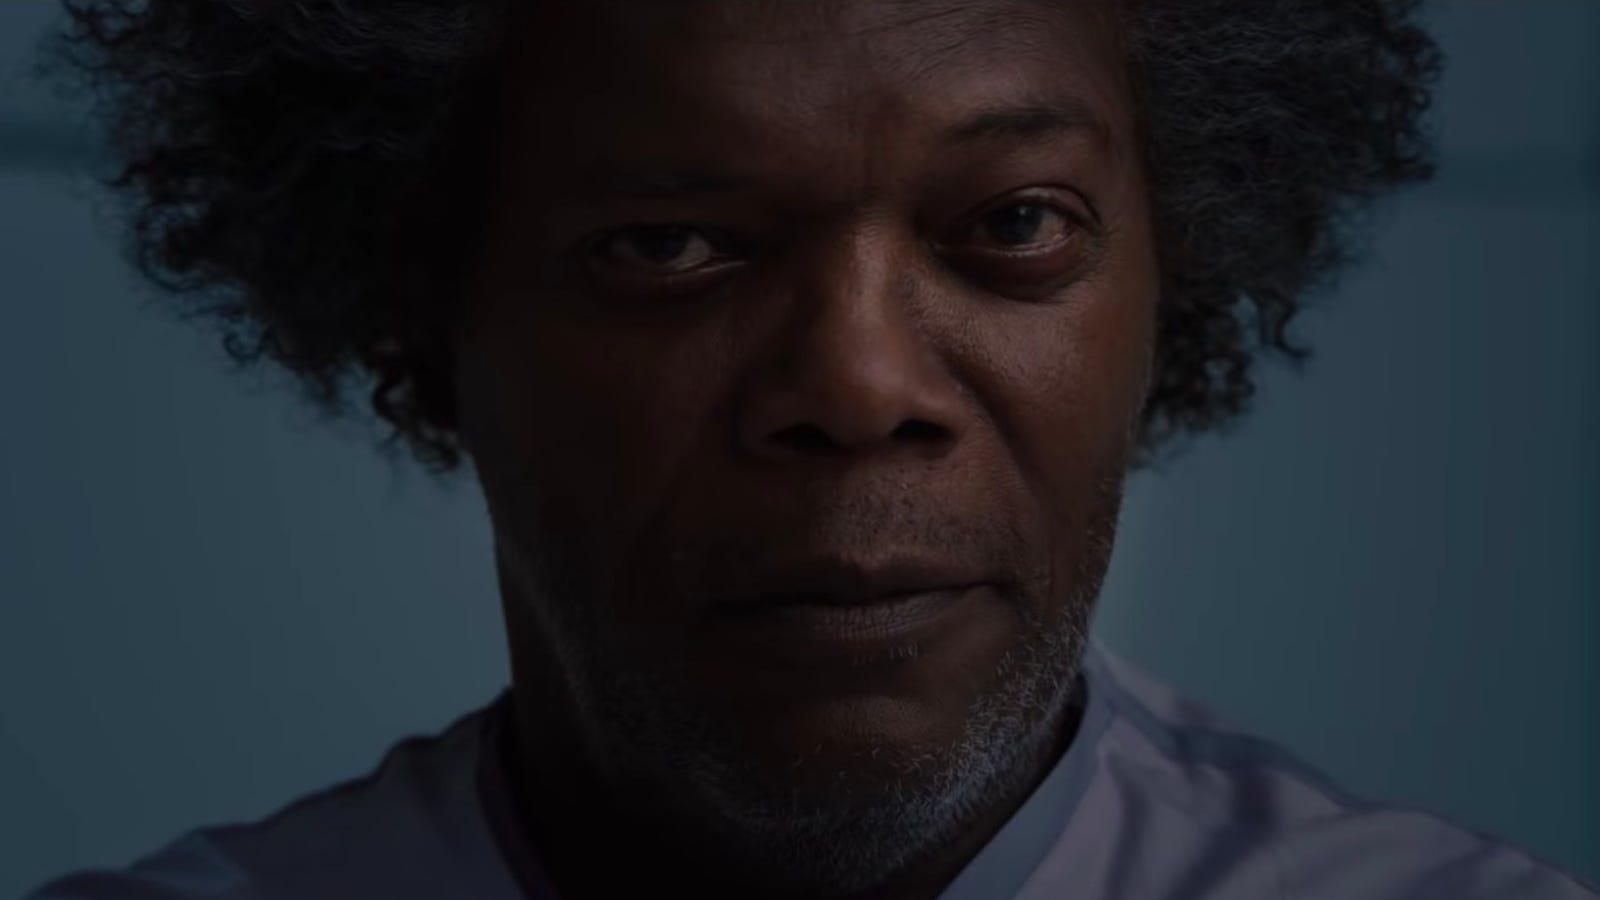 The New Glass Trailer Makes You Believe Supervillains Are Real